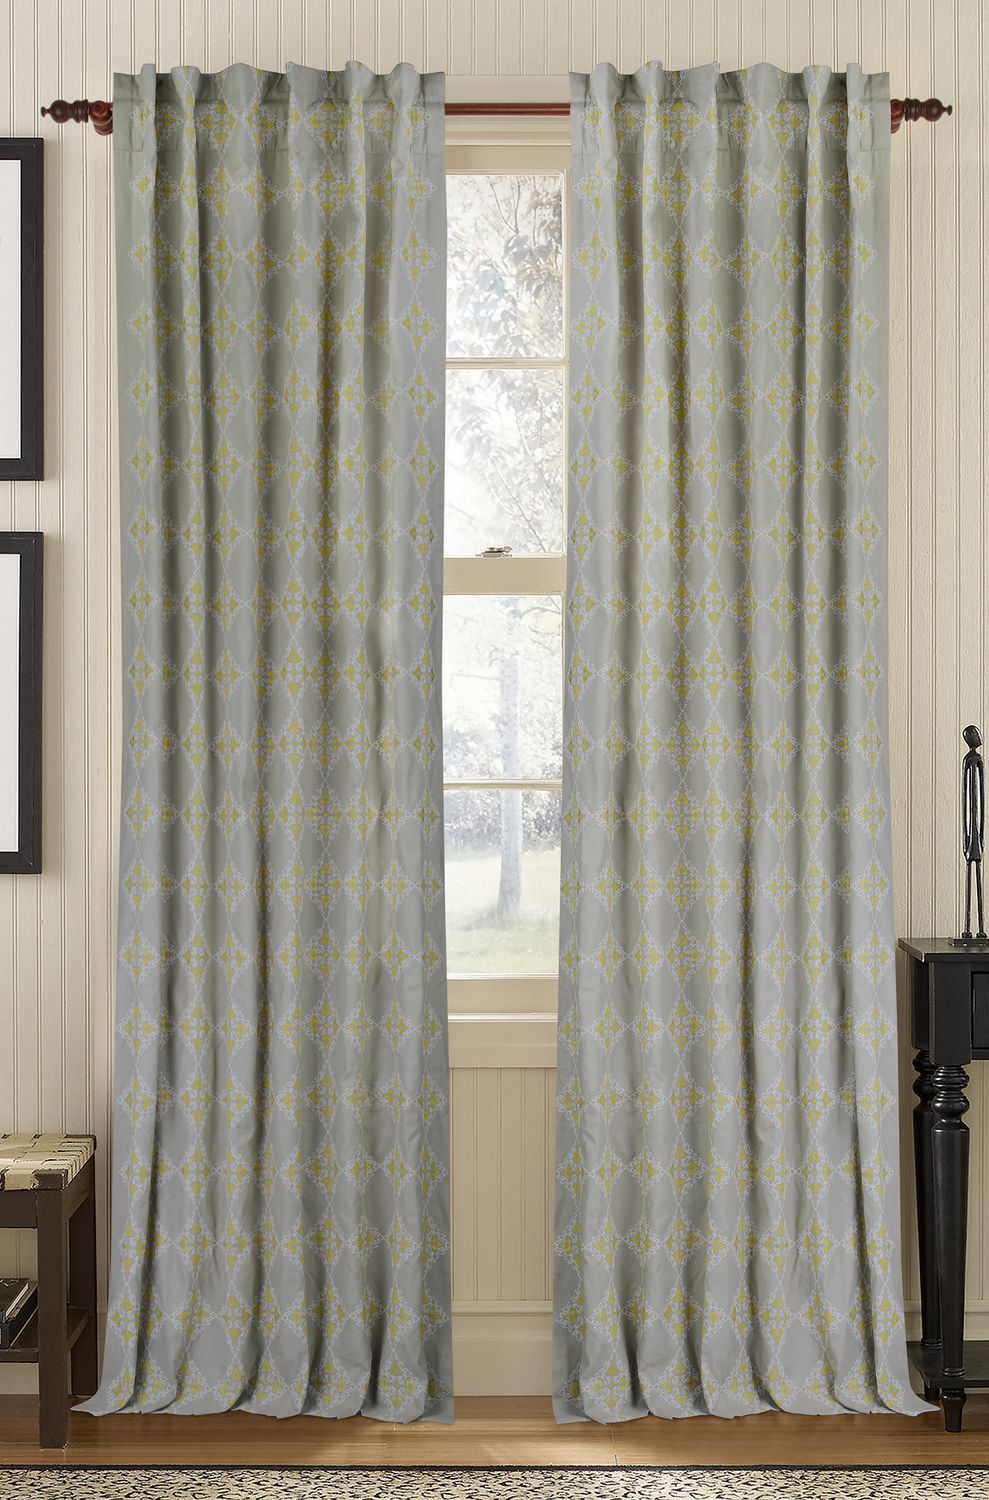 Cotton Curtain Panels Muriel Kay Exotic Linen Cotton Drapery Panel